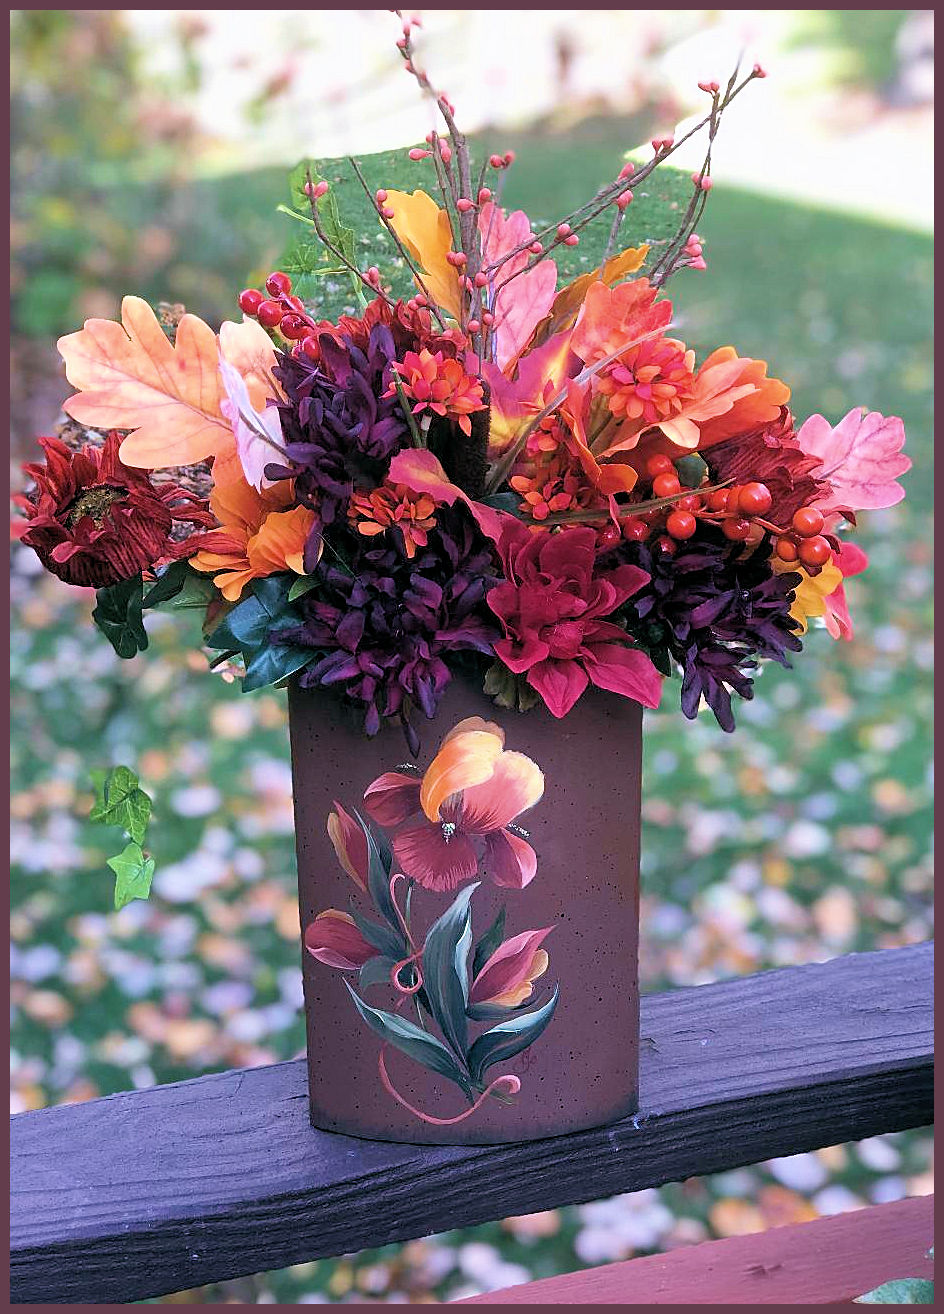 metal-3-sided-rusty-metal-container-545812-with-flowers.jpg